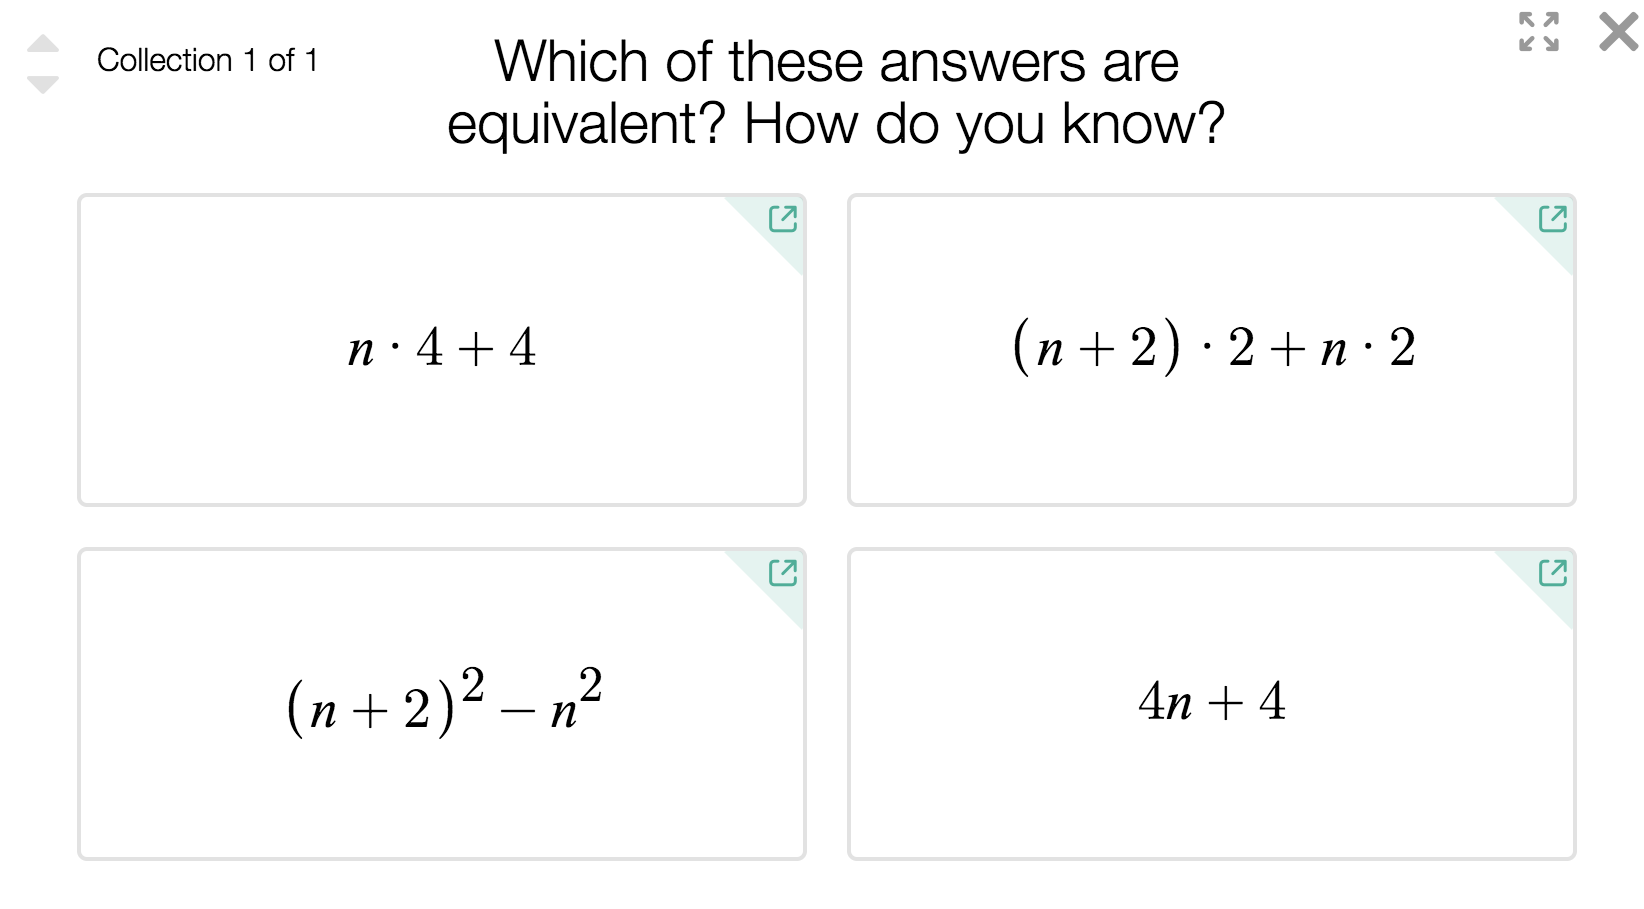 Which of these answers are equivalent? How do you know?